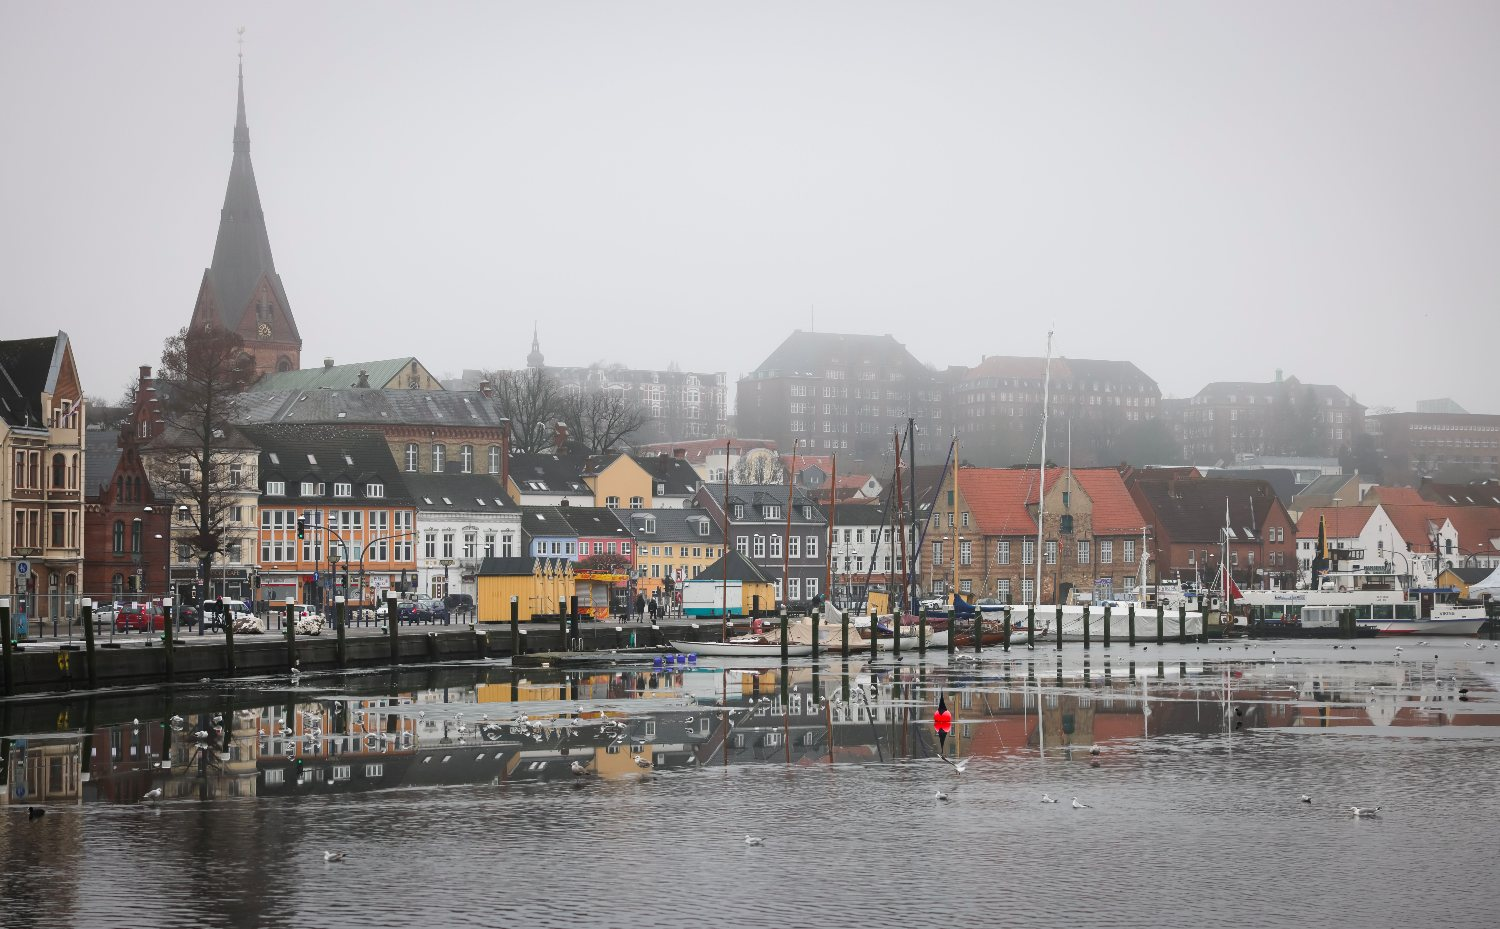 Covid-19 variant: Is the Flensburg outbreak a red flag for Germany?